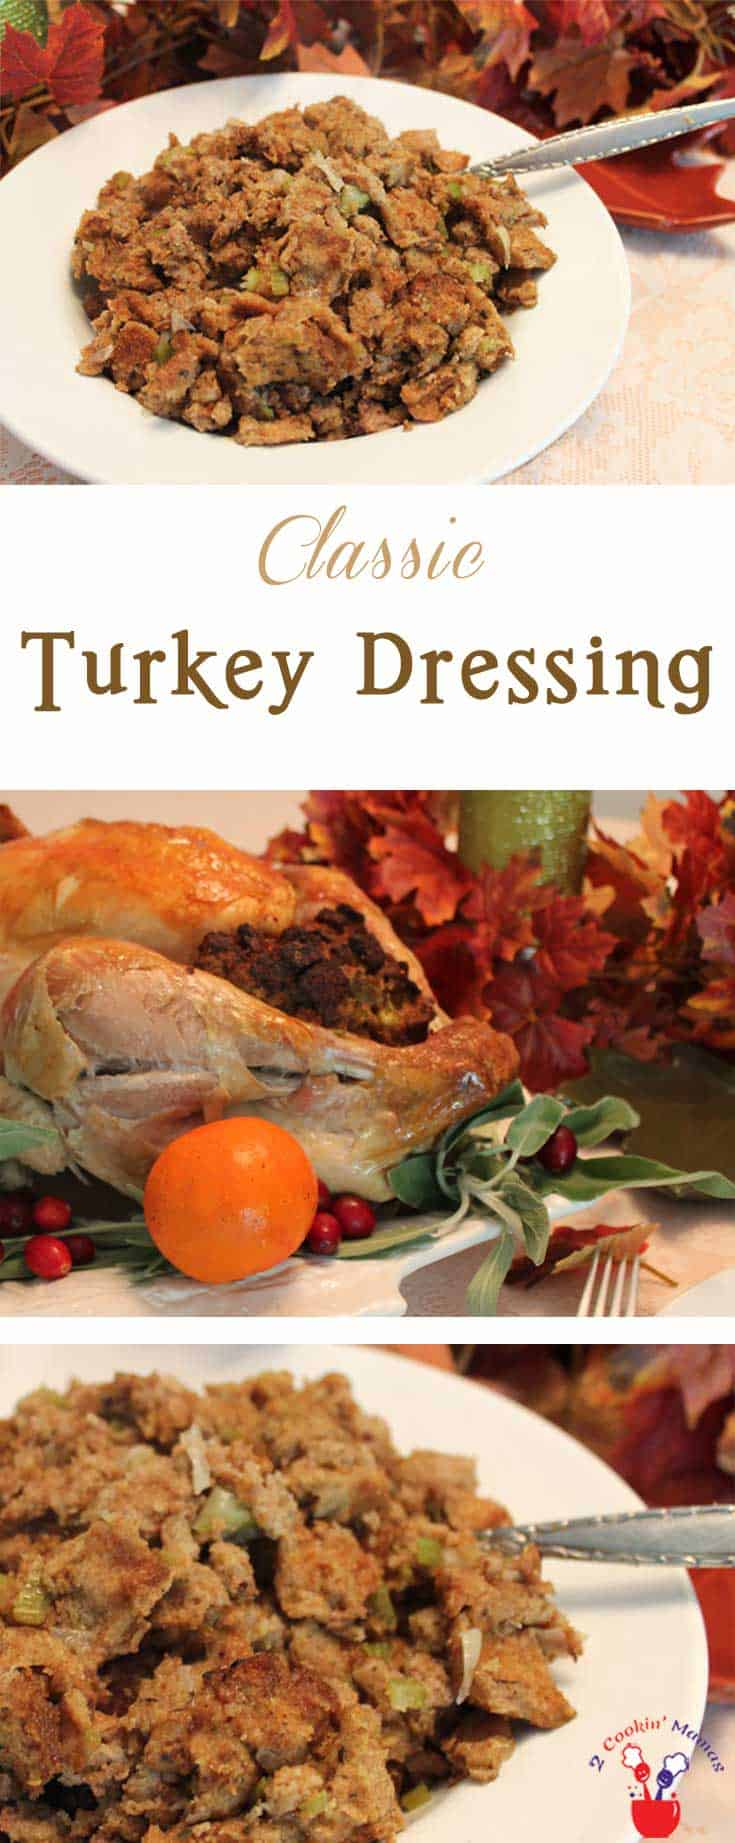 Classic Turkey Dressing | 2 Cookin Mamas A turkey isn't complete without its delicious classic turkey dressing or stuffing. Toasted bread flavored with butter, onion, celery and poultry season will set this holiday dinner side dish apart from all the others. #recipe